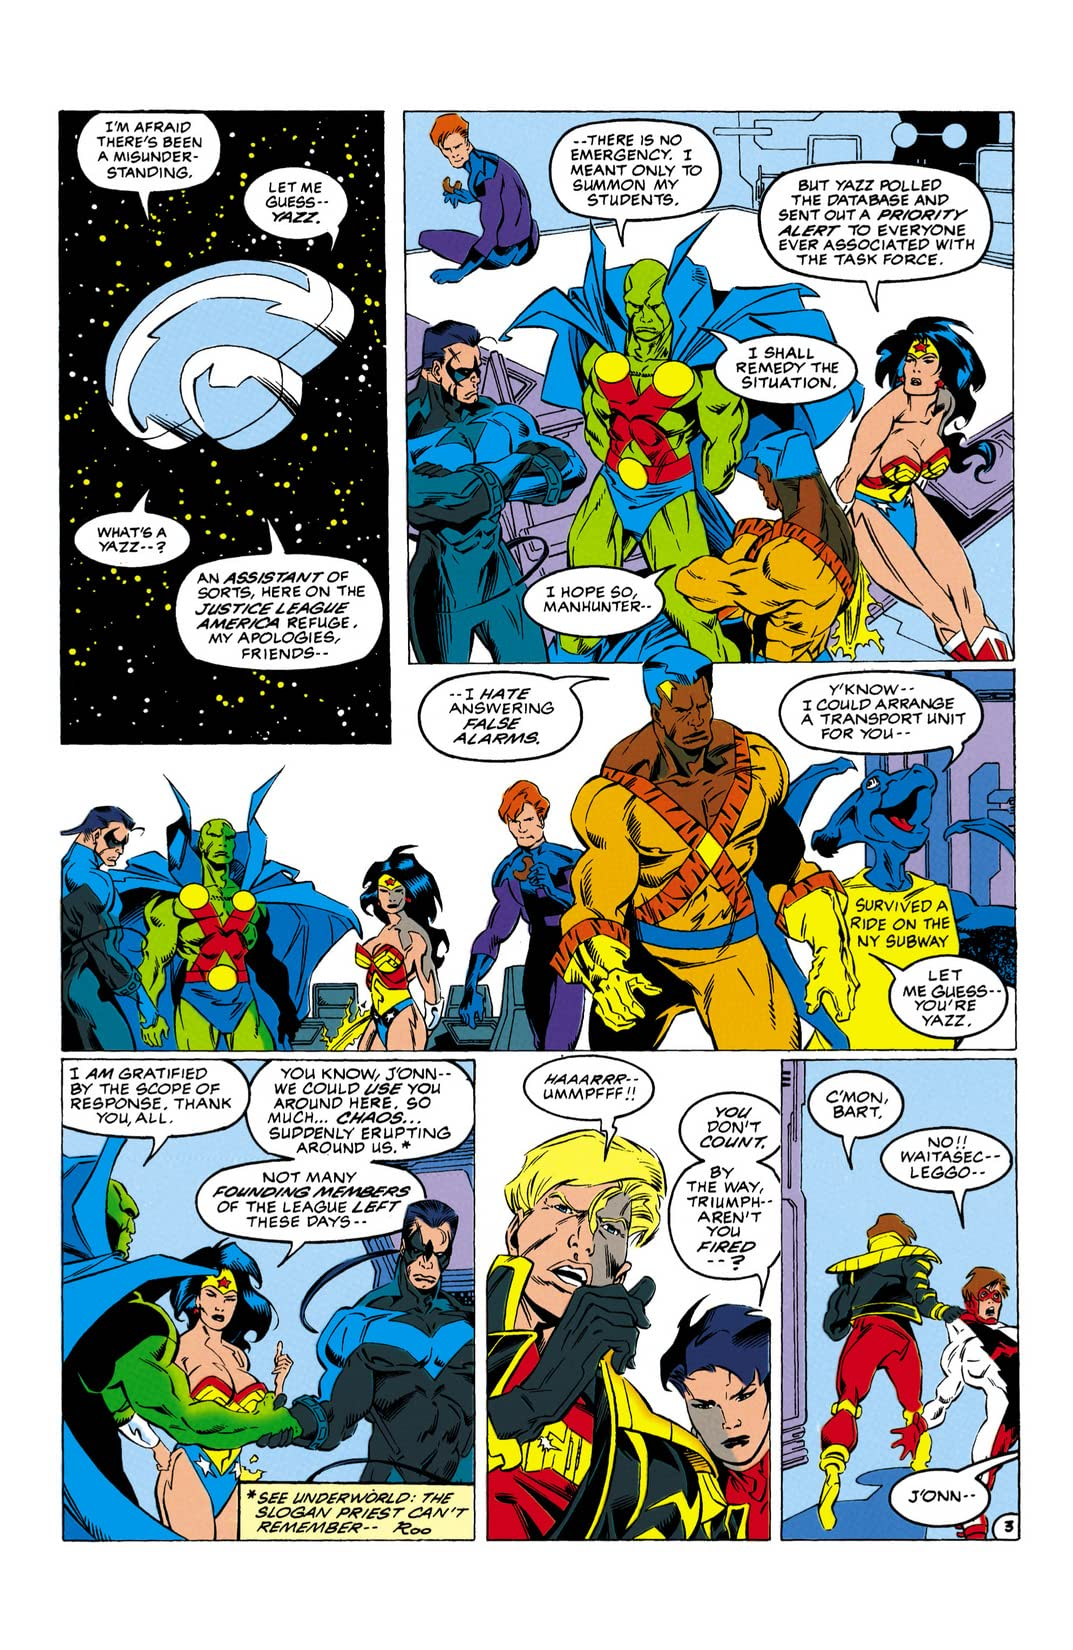 Justice League Task Force (1993-1996) #30